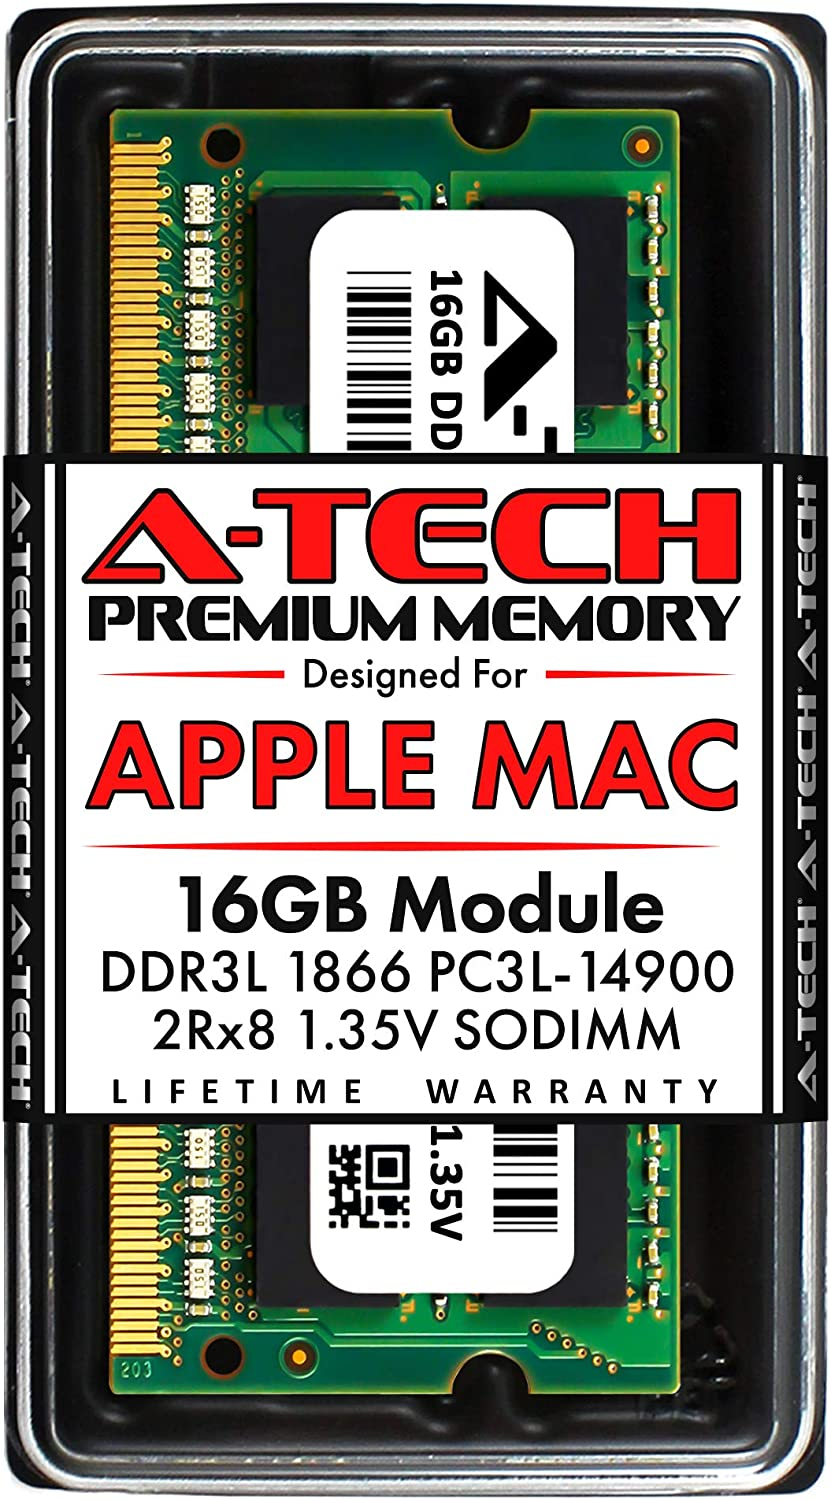 A-Tech 16GB RAM for Late 2015 iMac 27 inch Retina 5K | DDR3L 1866MHz / 1867MHz PC3L-14900 SO-DIMM 204-Pin CL13 1.35V Non-ECC Unbuffered Memory Upgrade Module